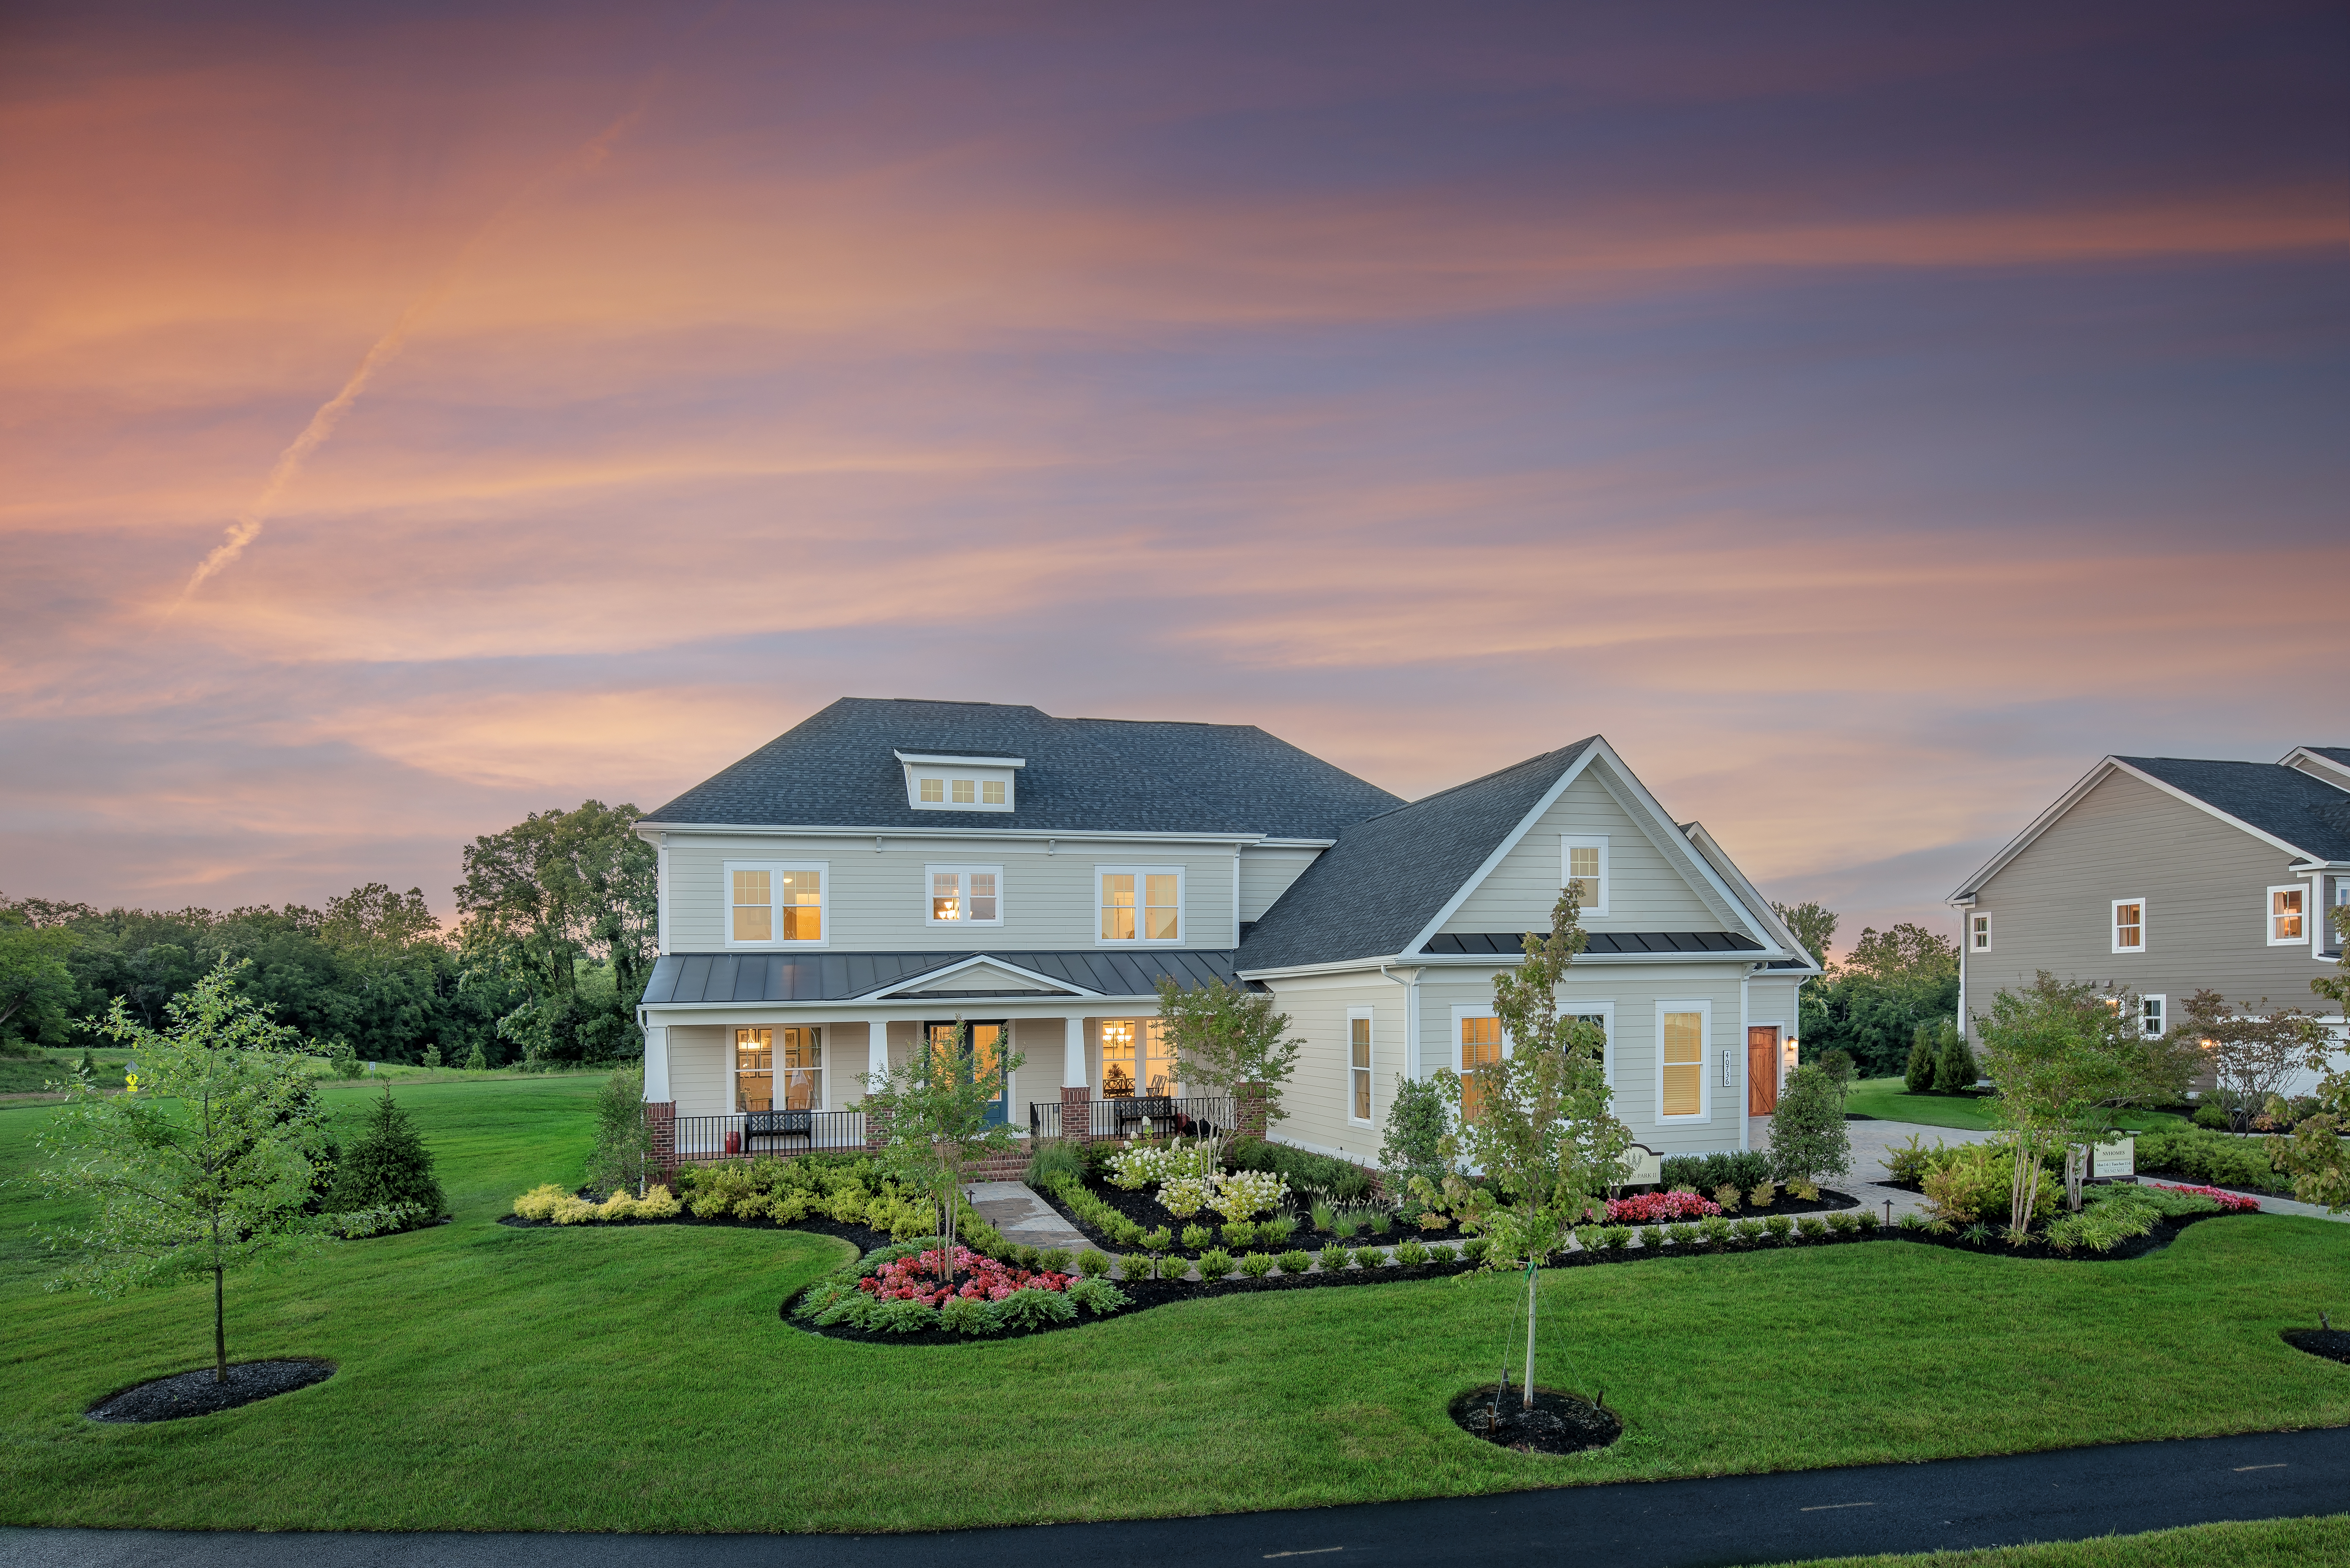 New Luxury Homes For Sale At Willowsford Estates The Grant